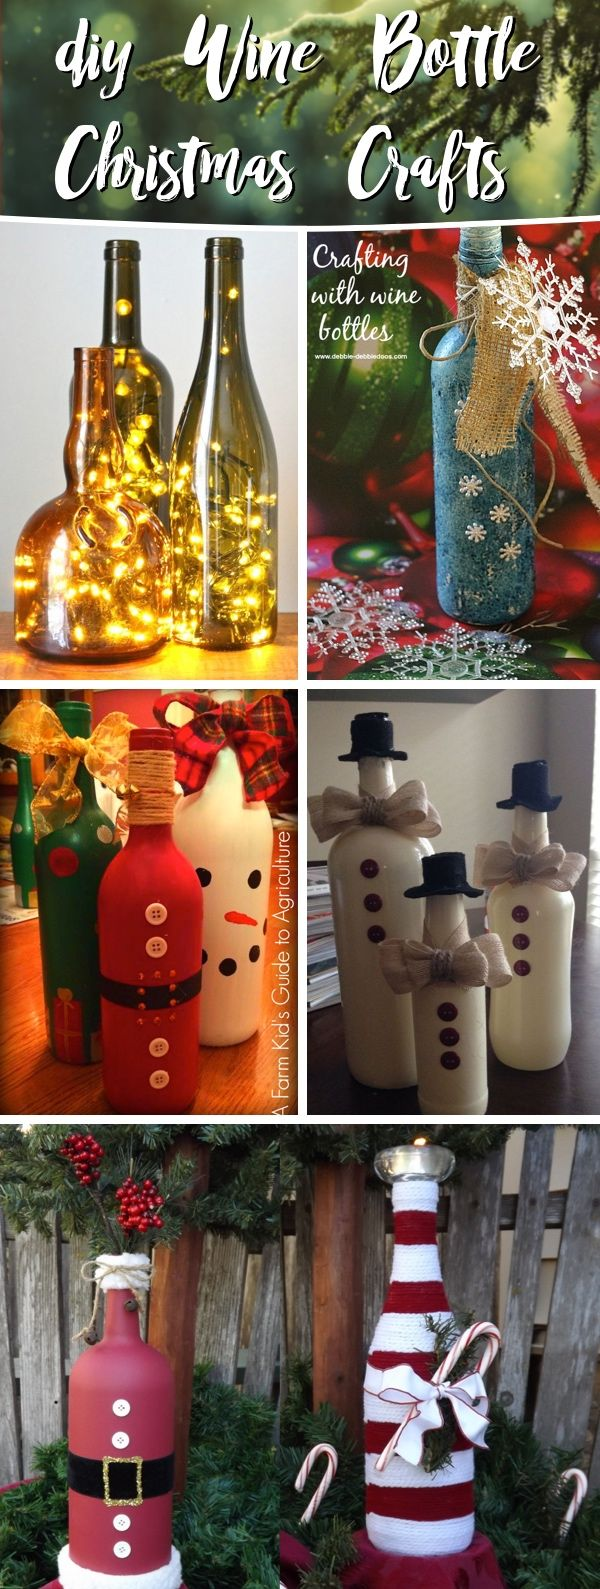 20 Wine Bottle Christmas Crafts To Go For A Festive Decor Blended With Some Upcycling Cute Diy Projects Wine Bottle Crafts Christmas Christmas Wine Bottle Crafts